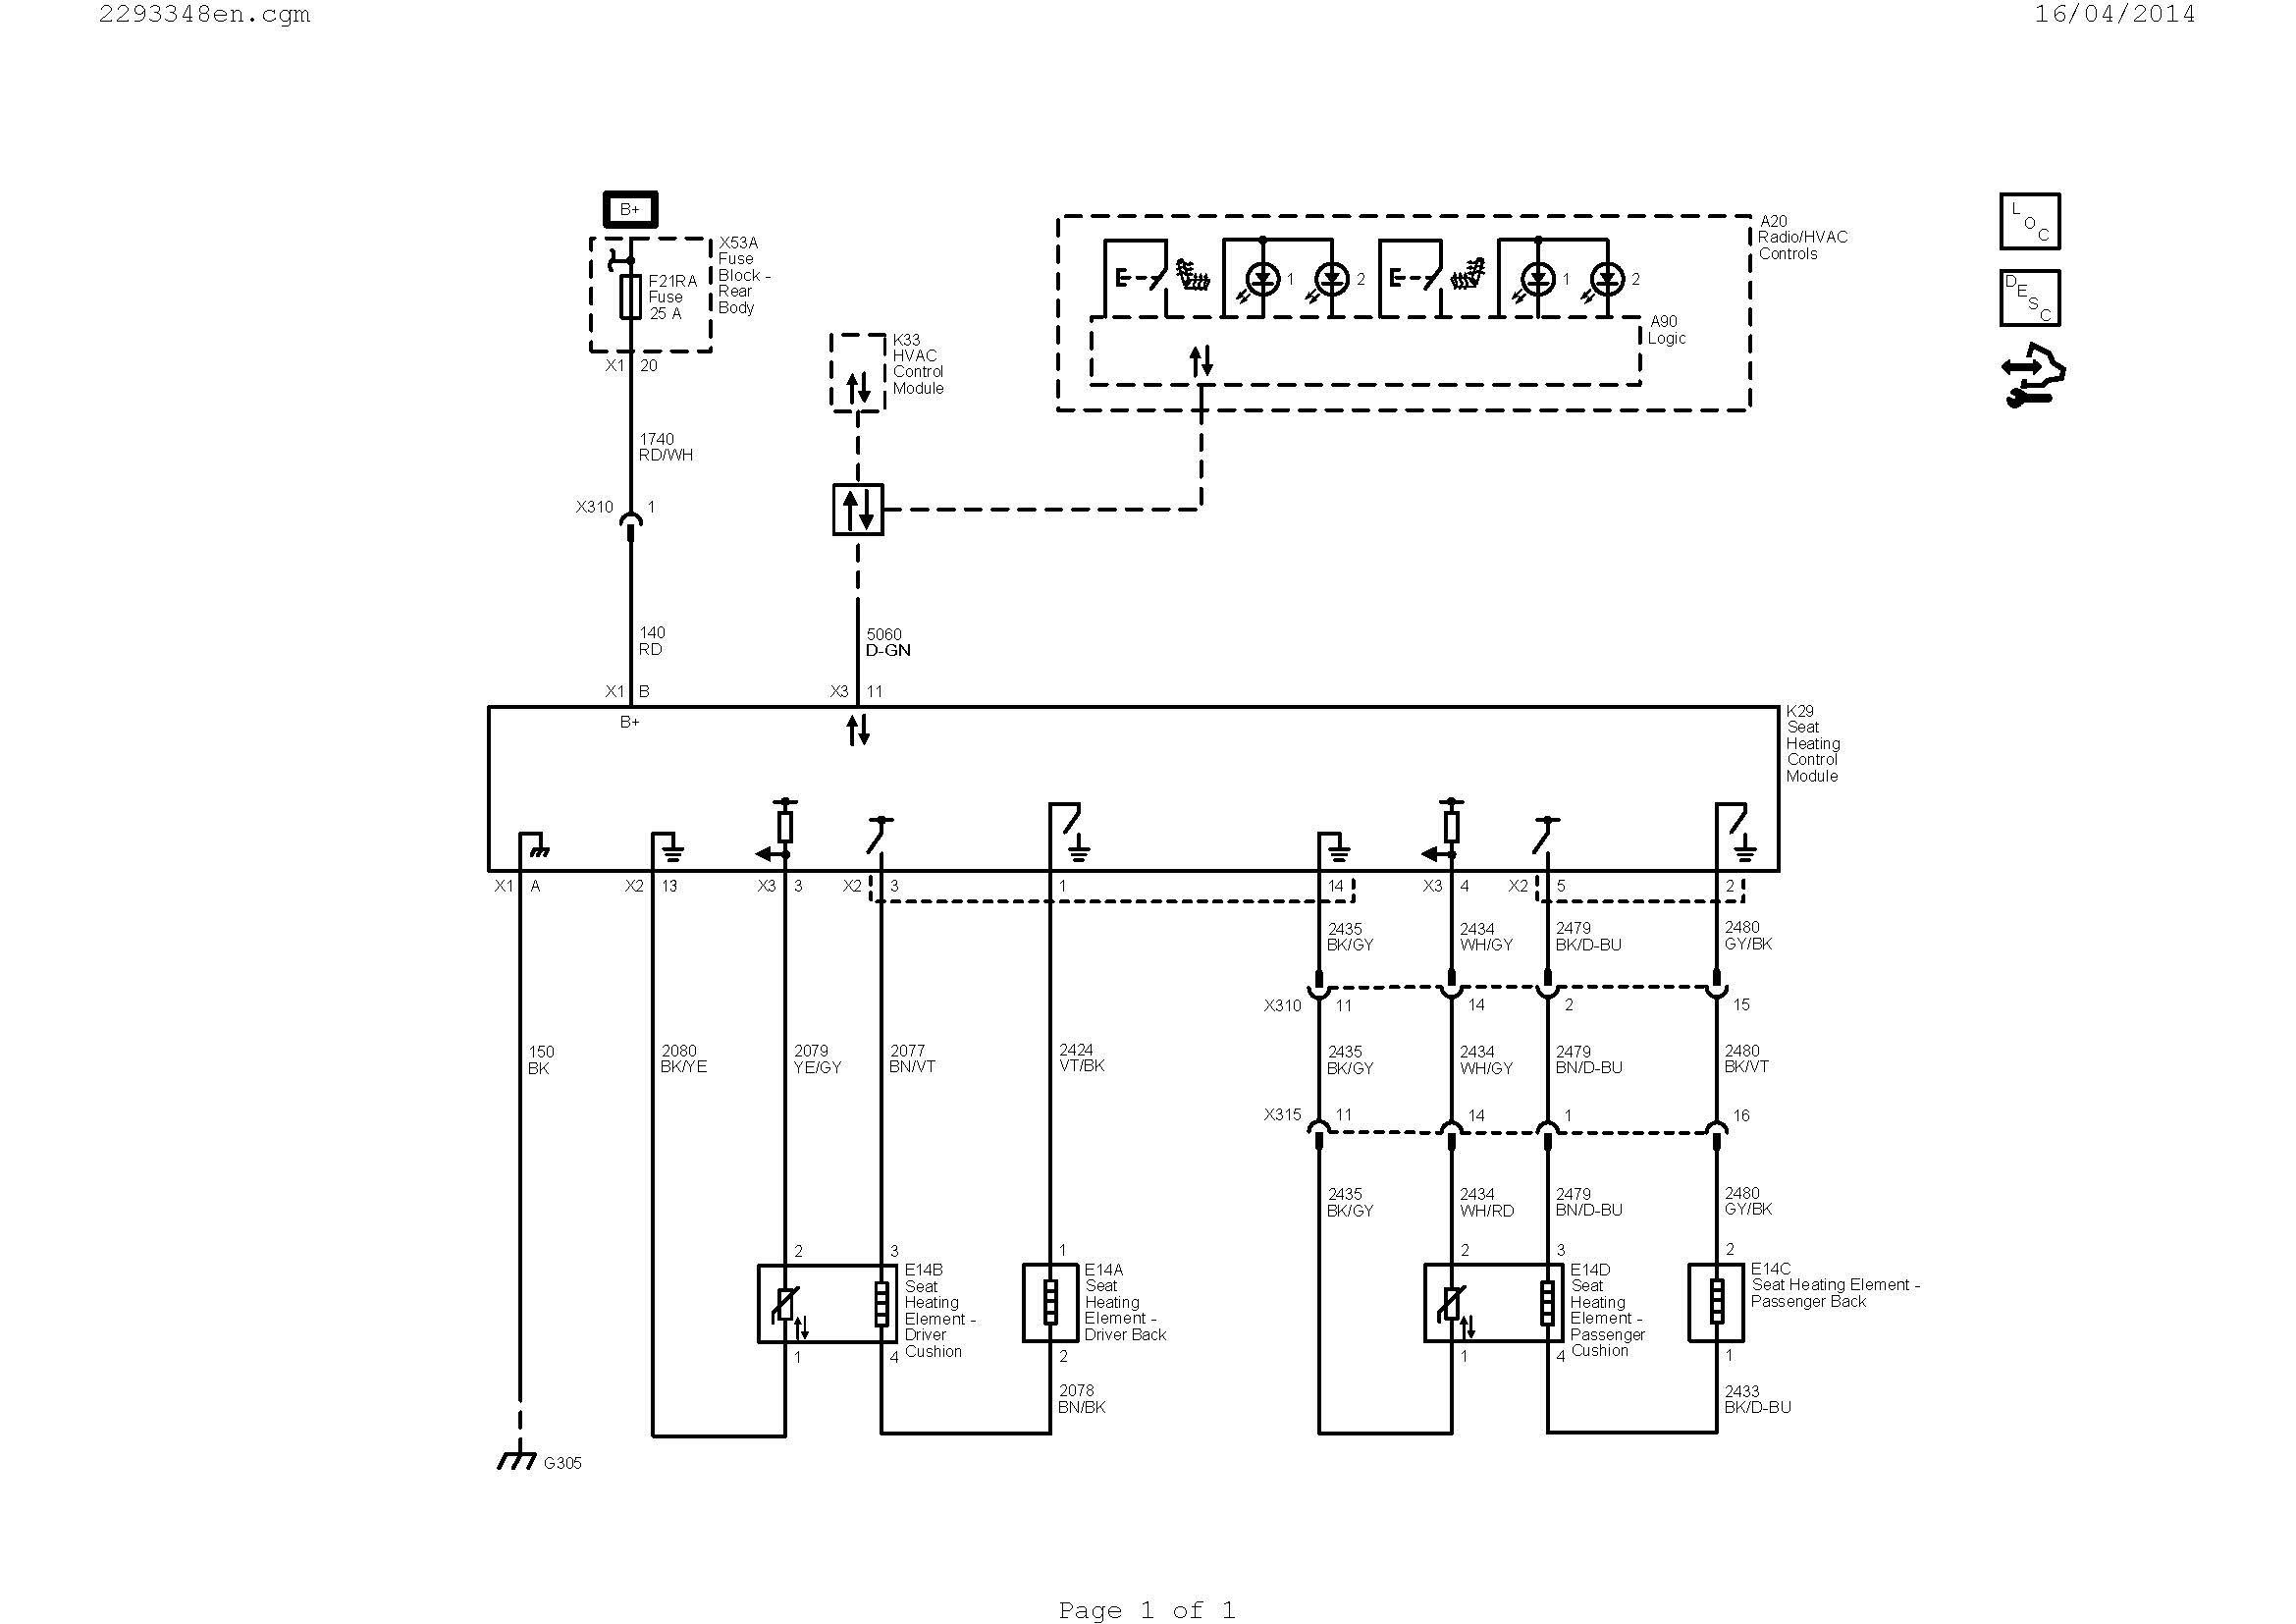 honeywell thermostat wiring diagram Download-Nest Wireless thermostat Wiring Diagram Refrence Wiring Diagram Ac Valid Hvac Diagram Best Hvac Diagram 0d 4-b